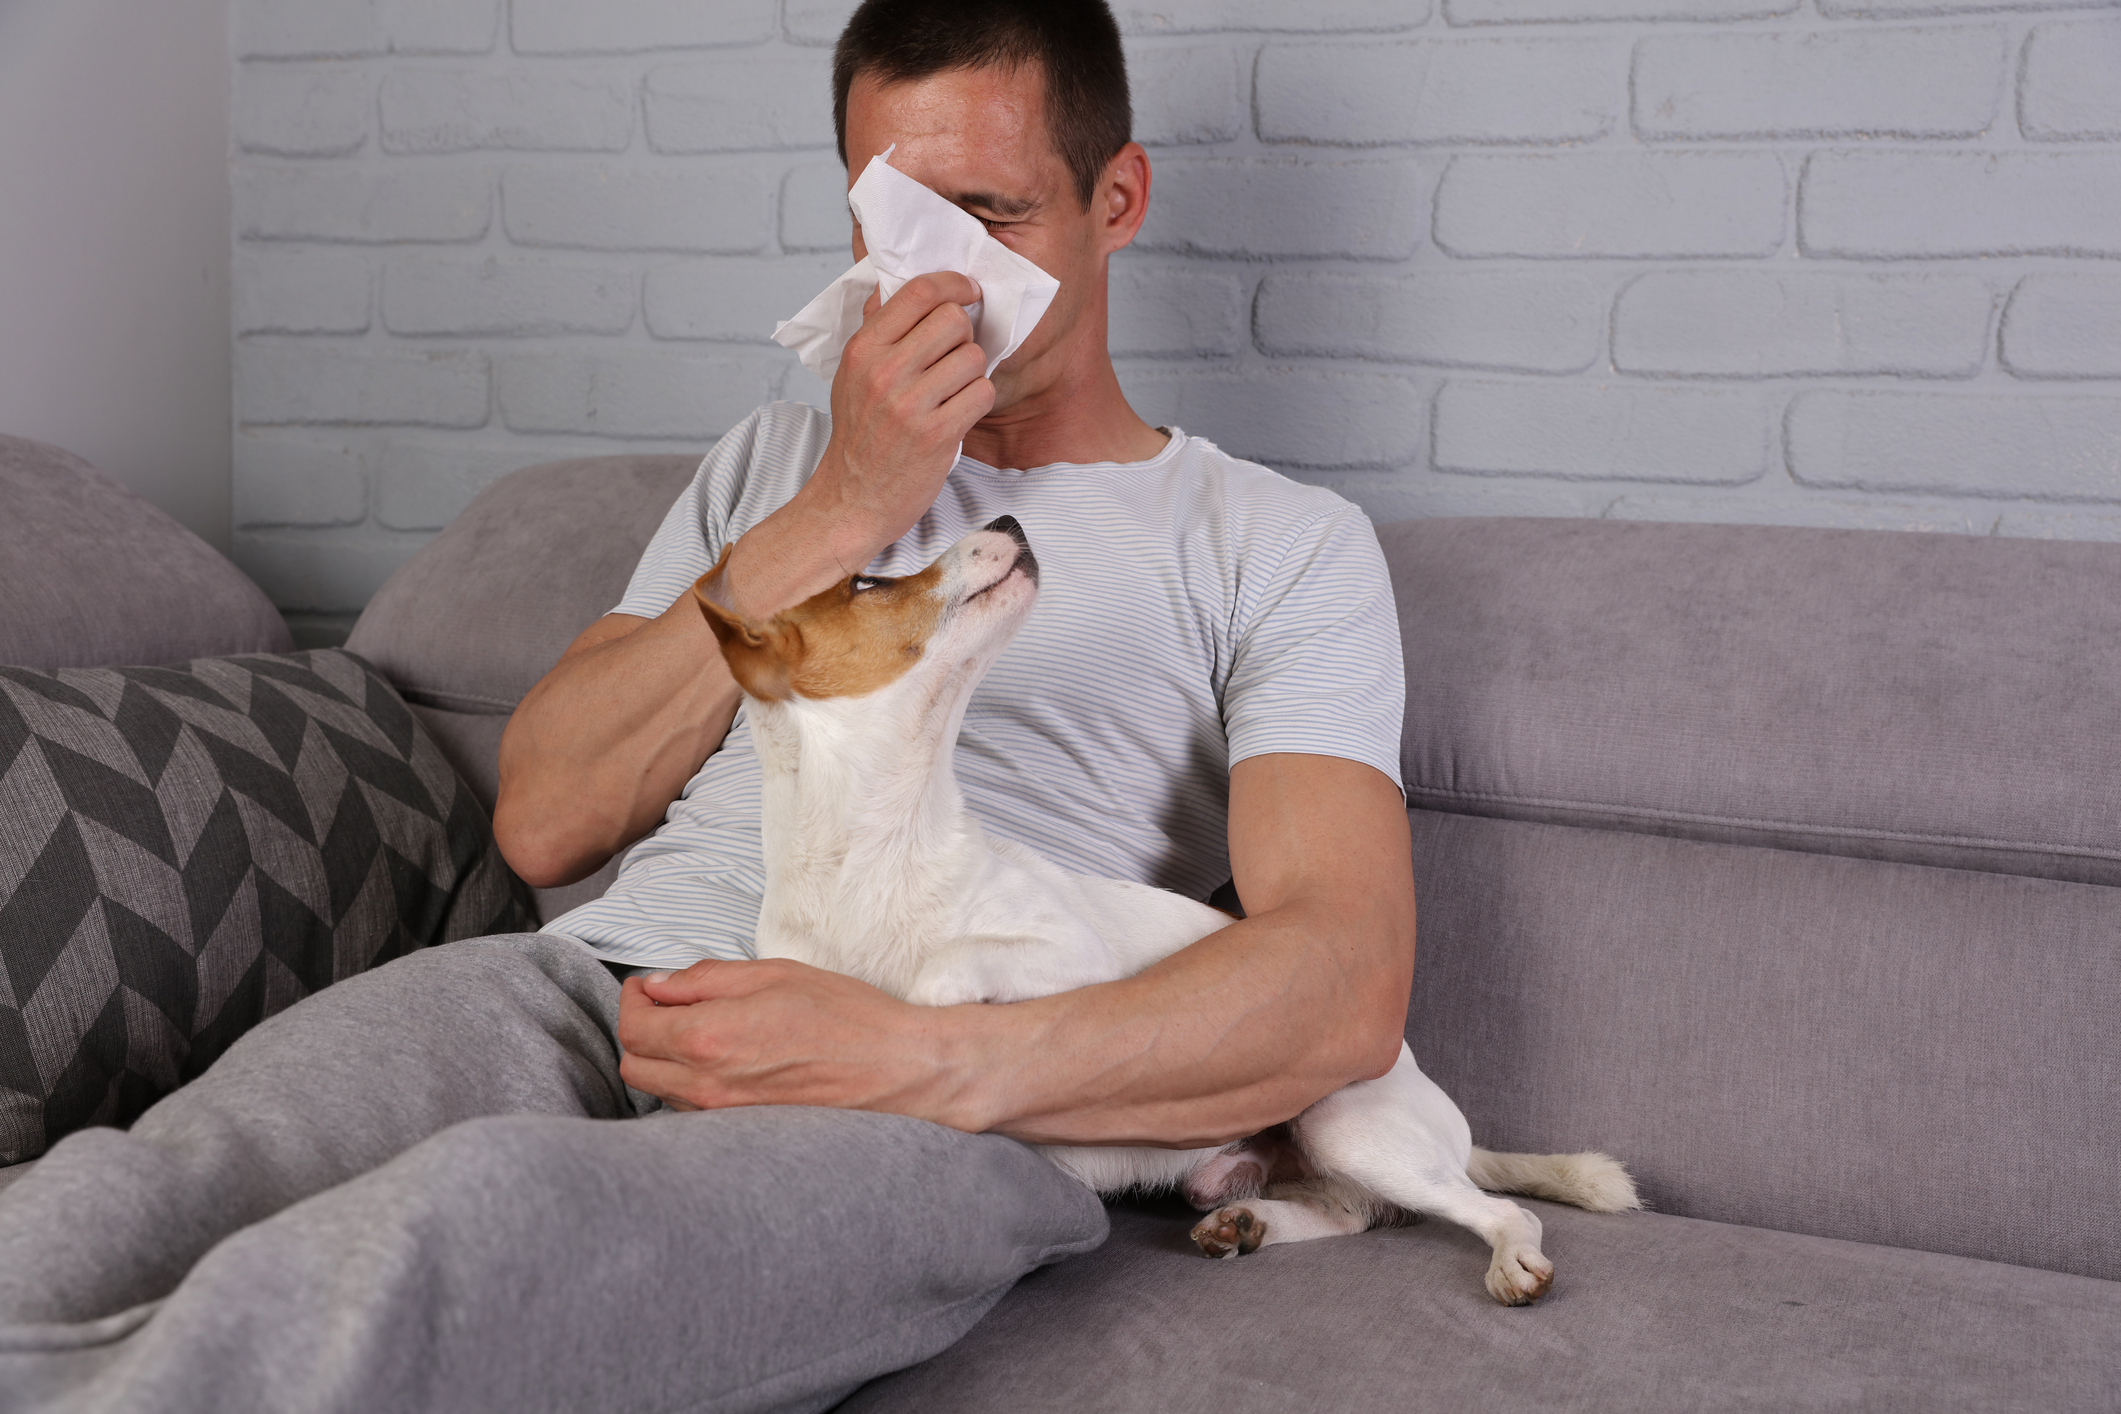 Man having pet allergy symptoms